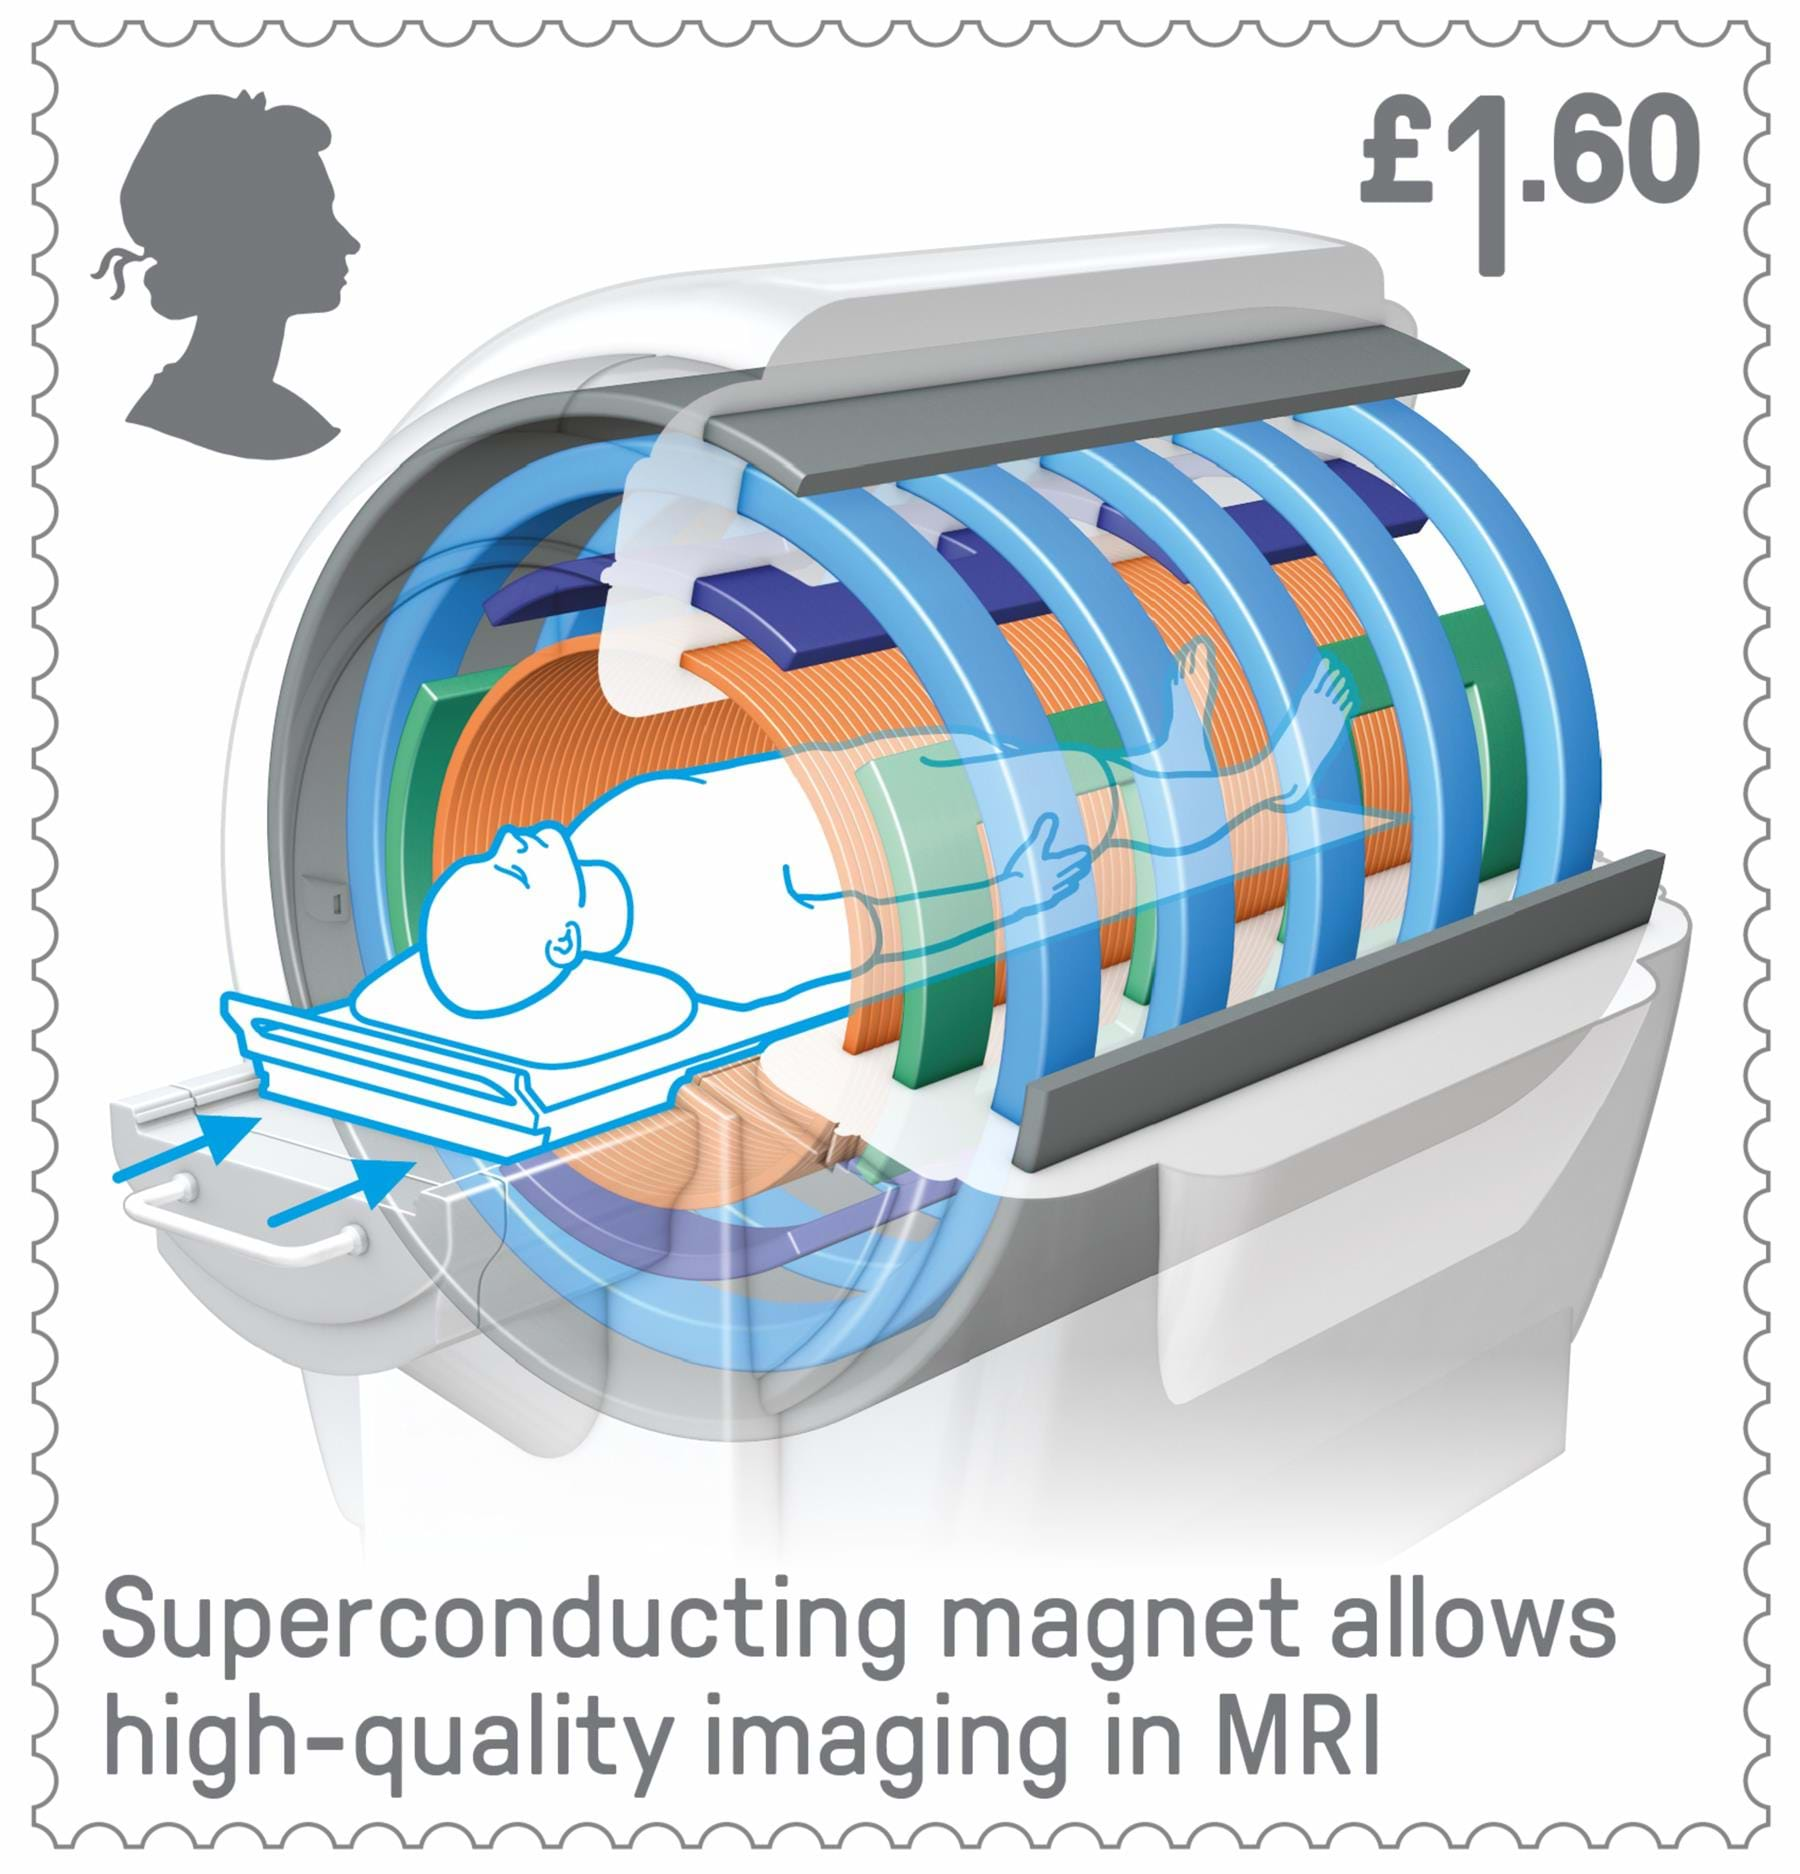 Royal Mail celebrates 50 years of UK engineering excellence - News